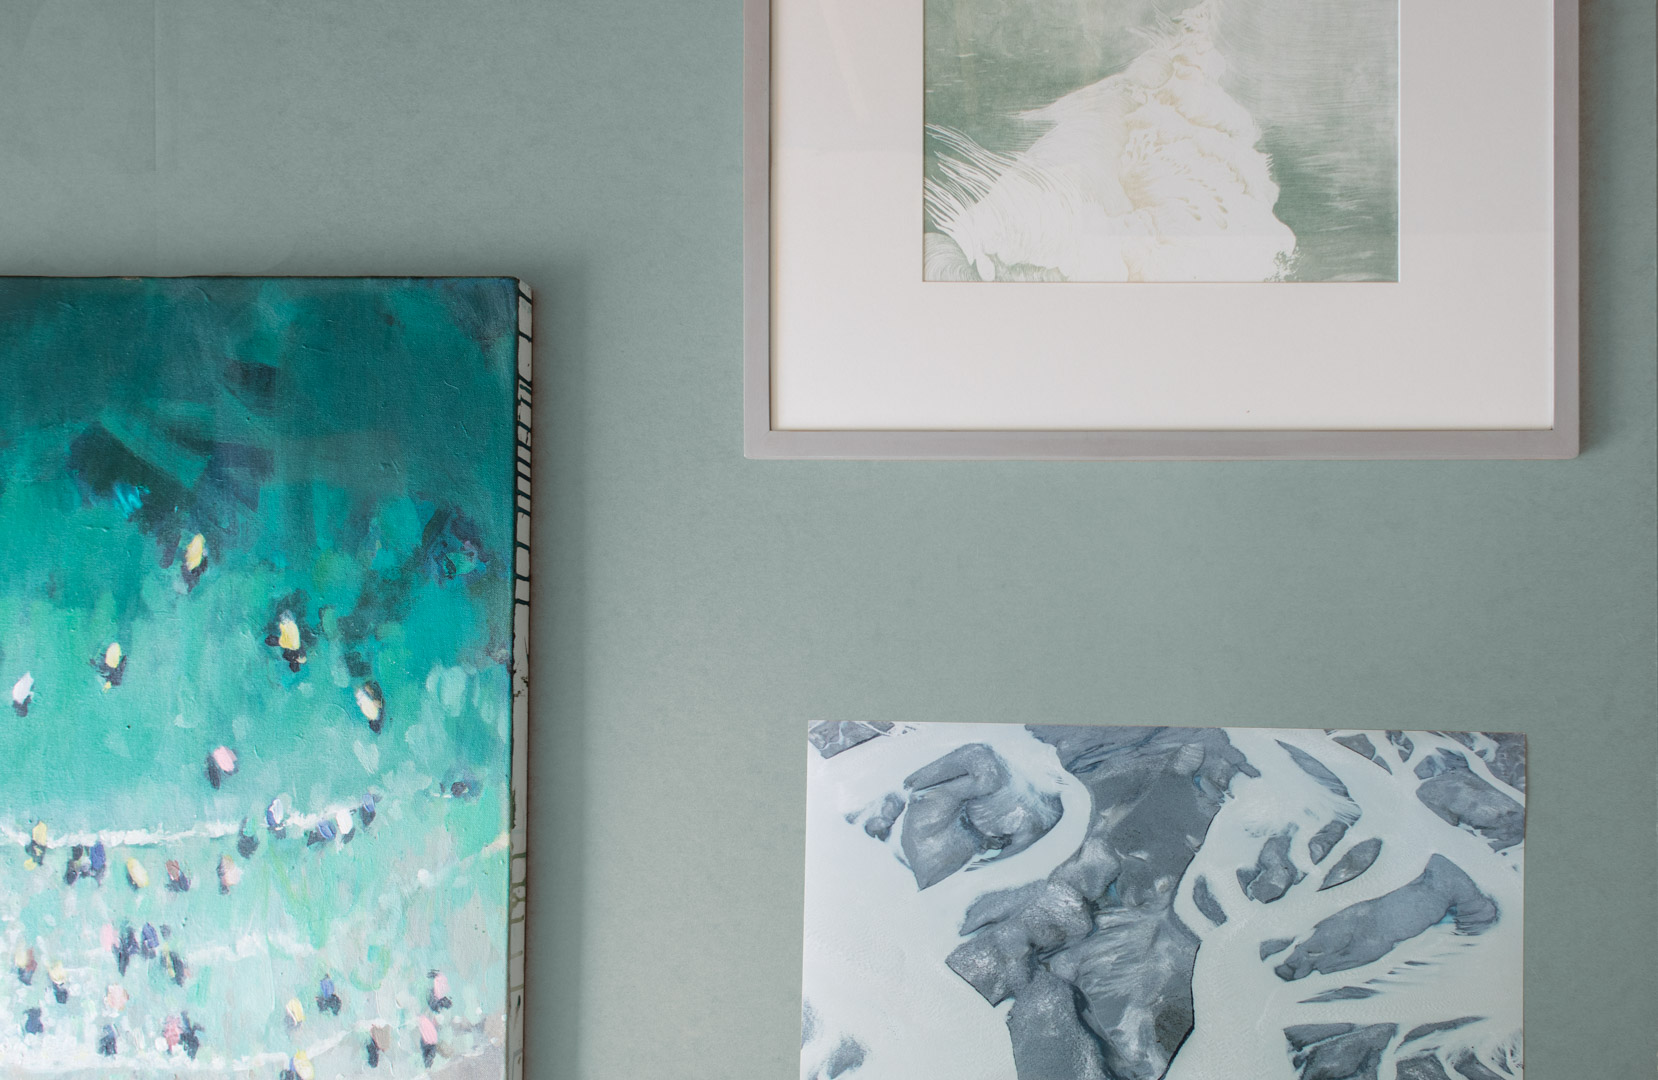 Our Below is featured from left,  Mother Ivey Surfers  by Nina Brooke,  Nacreous  by Mimi Robson and  Underneath VI  by Toby Butler. A curation that works great agains soft pastel backdrops.